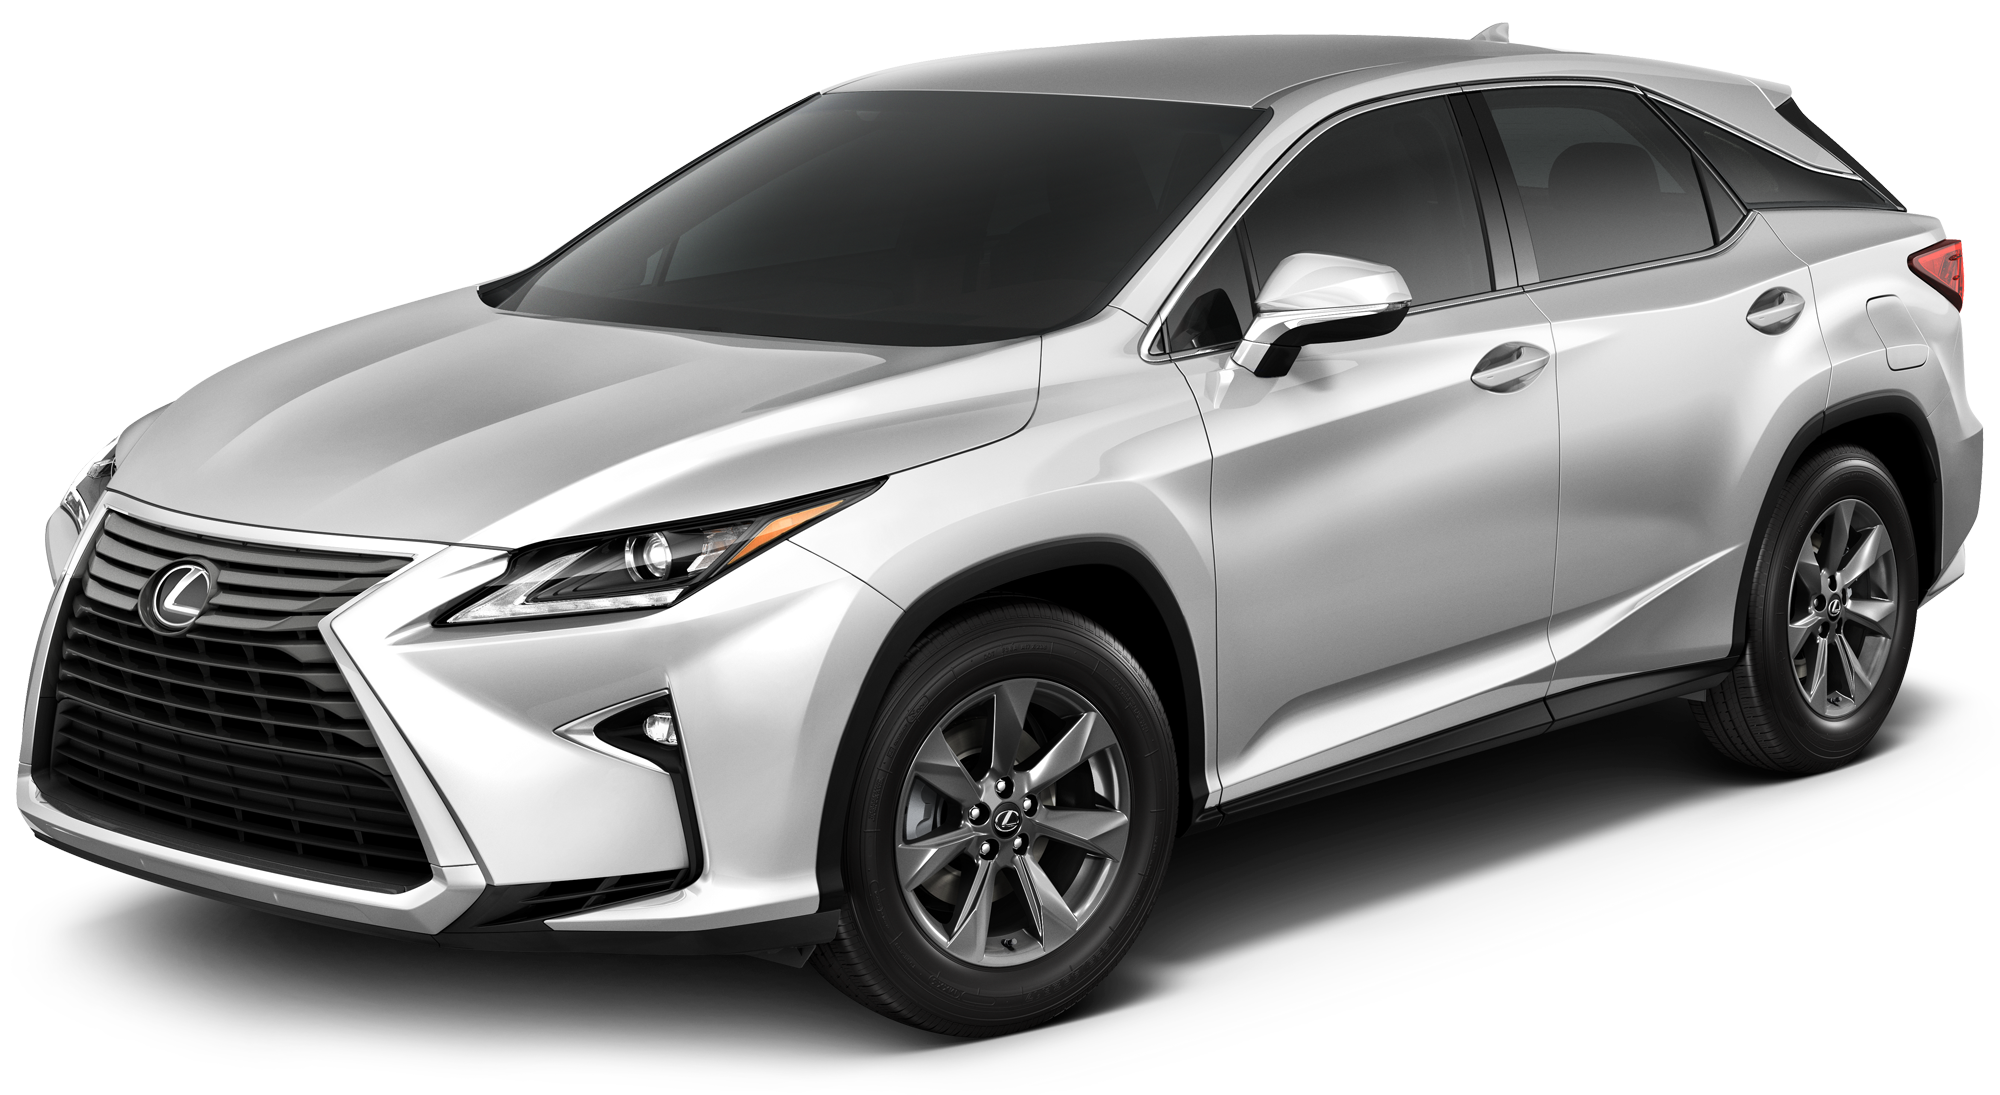 2019 Lexus RX 350 Incentives, Specials & Offers in